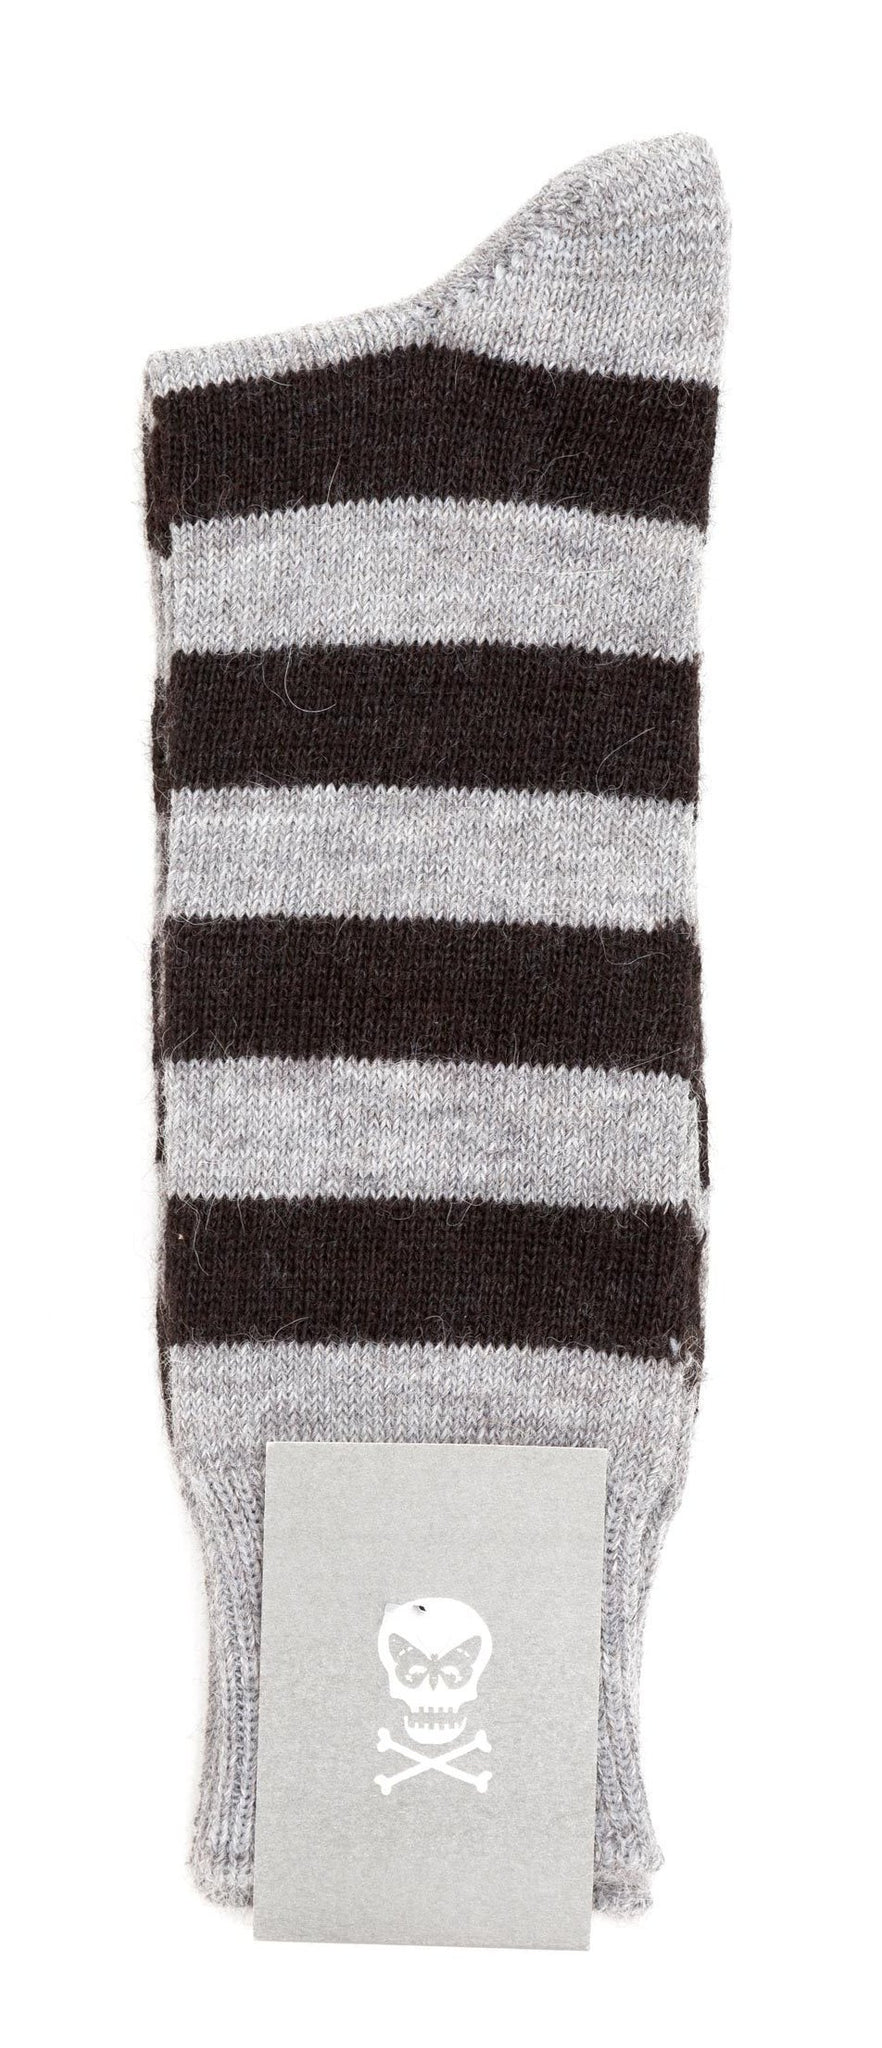 Regent Alpaca Socks - Grey / Black